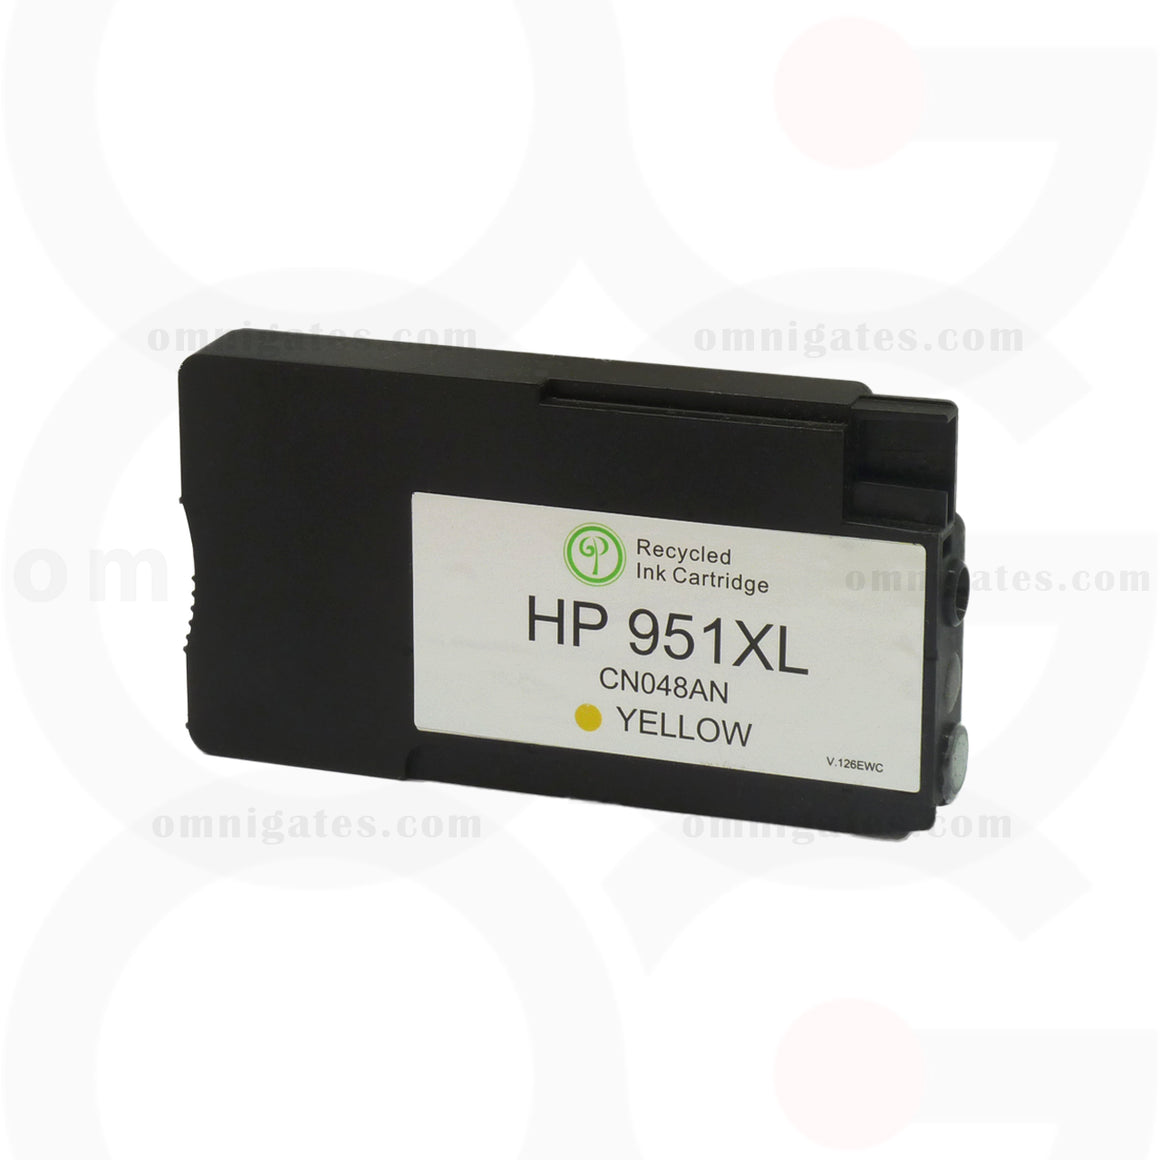 Yellow OGP Remanufactured HP CN048AN Inkjet Cartridge